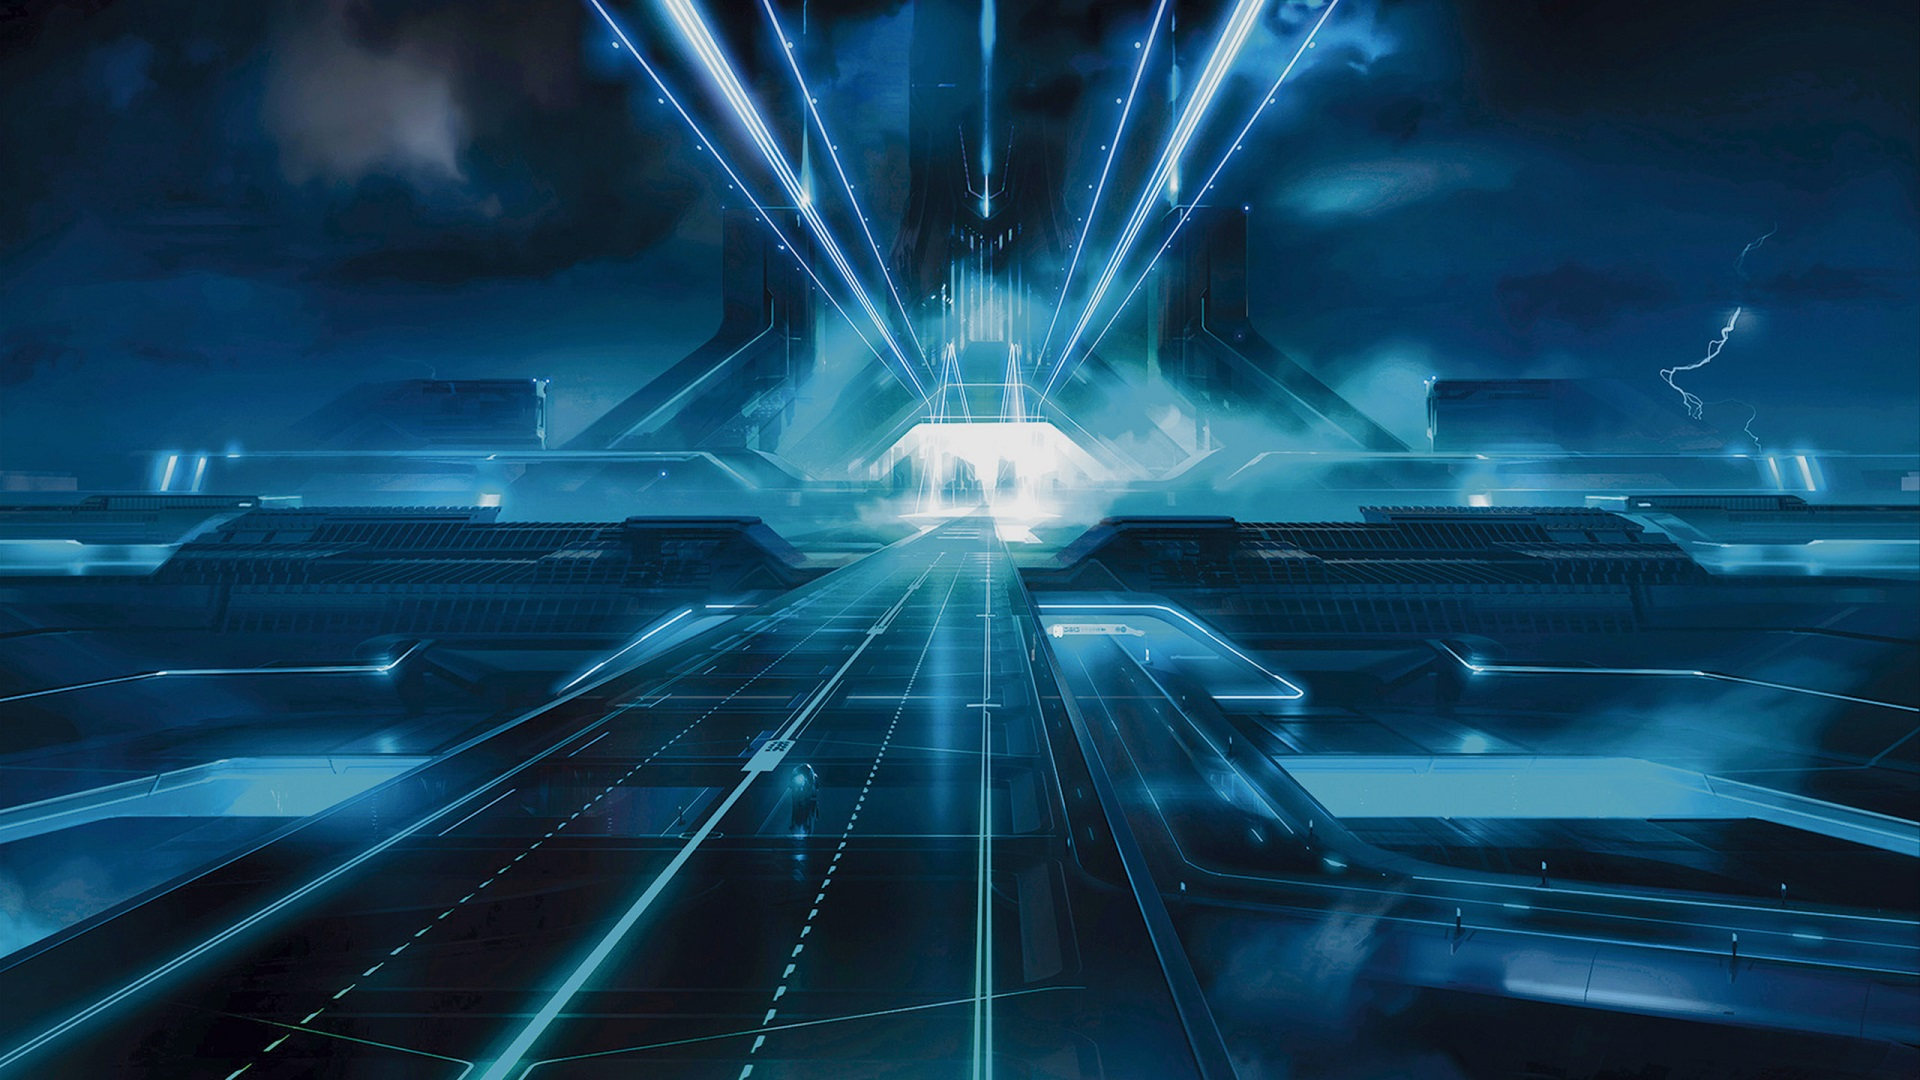 Giant Wall Murals 235 Tron Legacy Hd Wallpapers Backgrounds Wallpaper